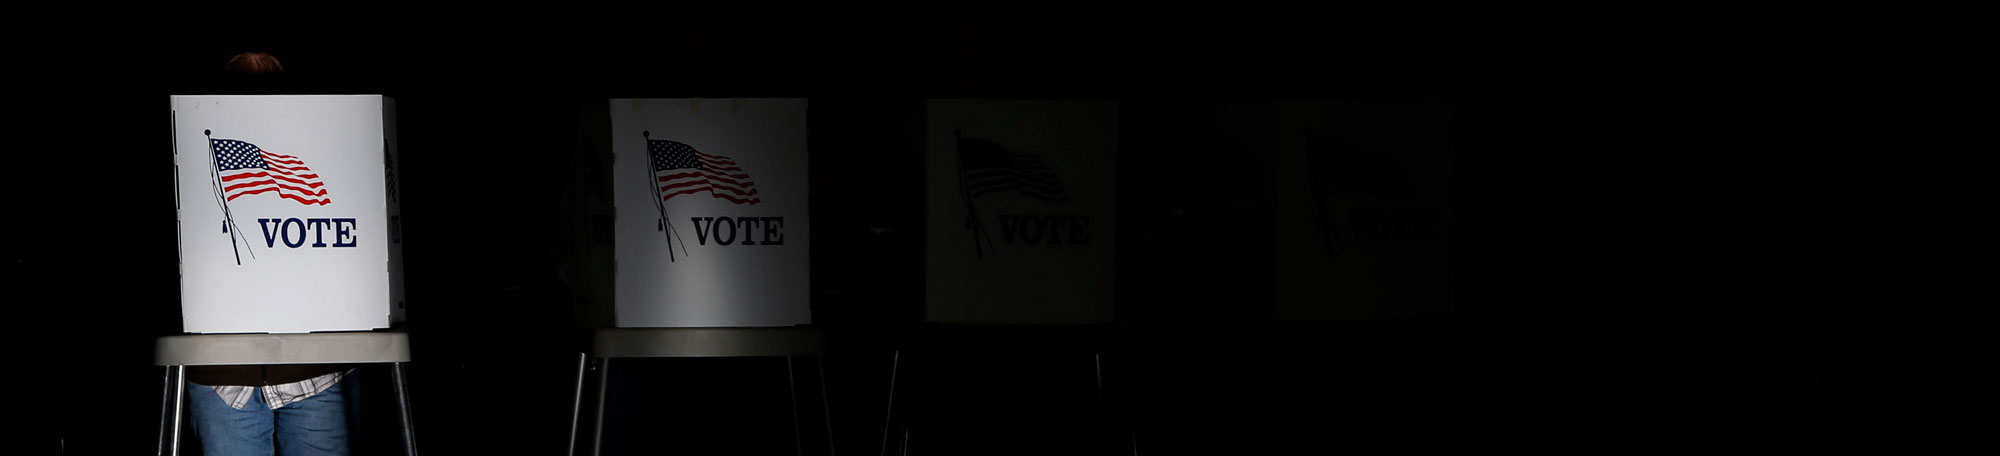 Election voters in booth